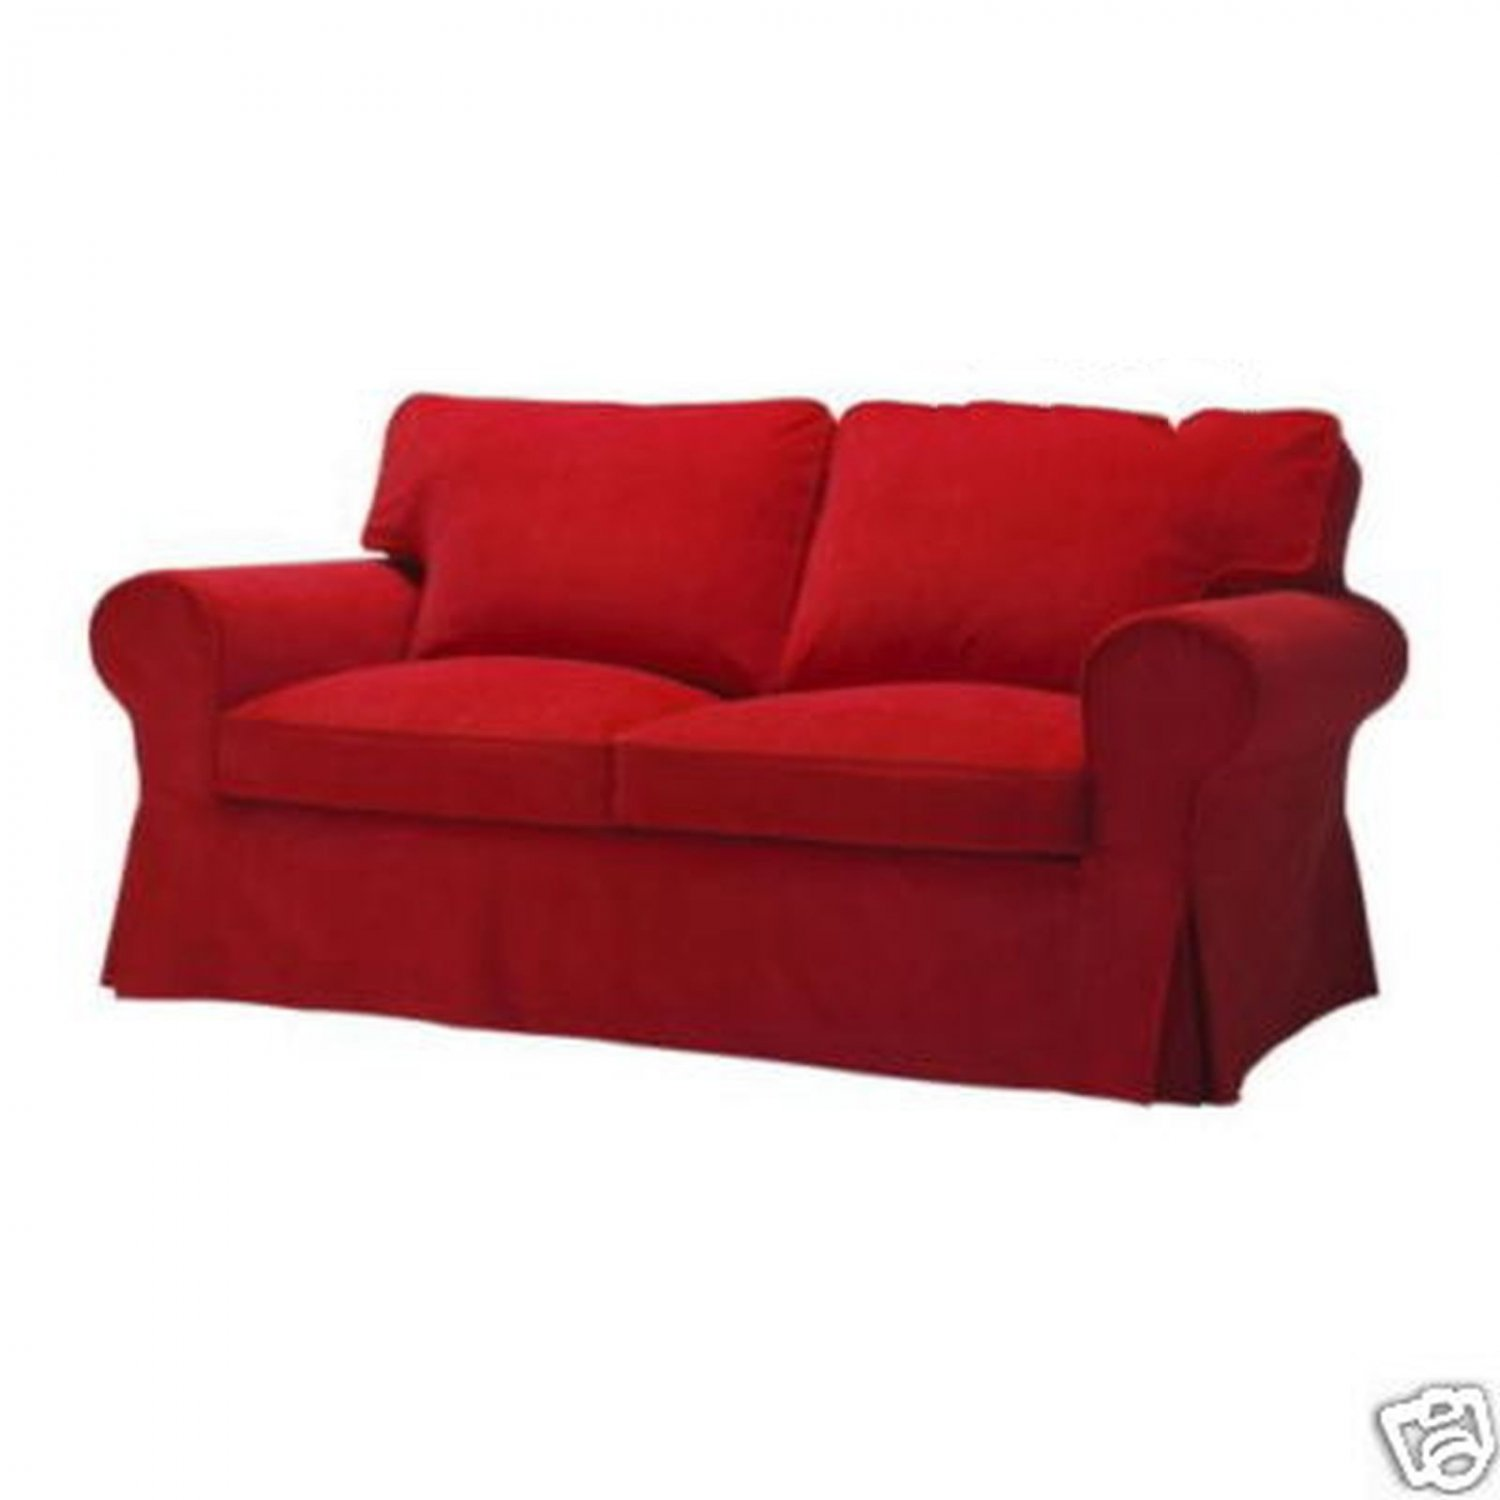 Ikea Ektorp 2 Seat Loveseat Sofa Slipcover Cover Leaby Red